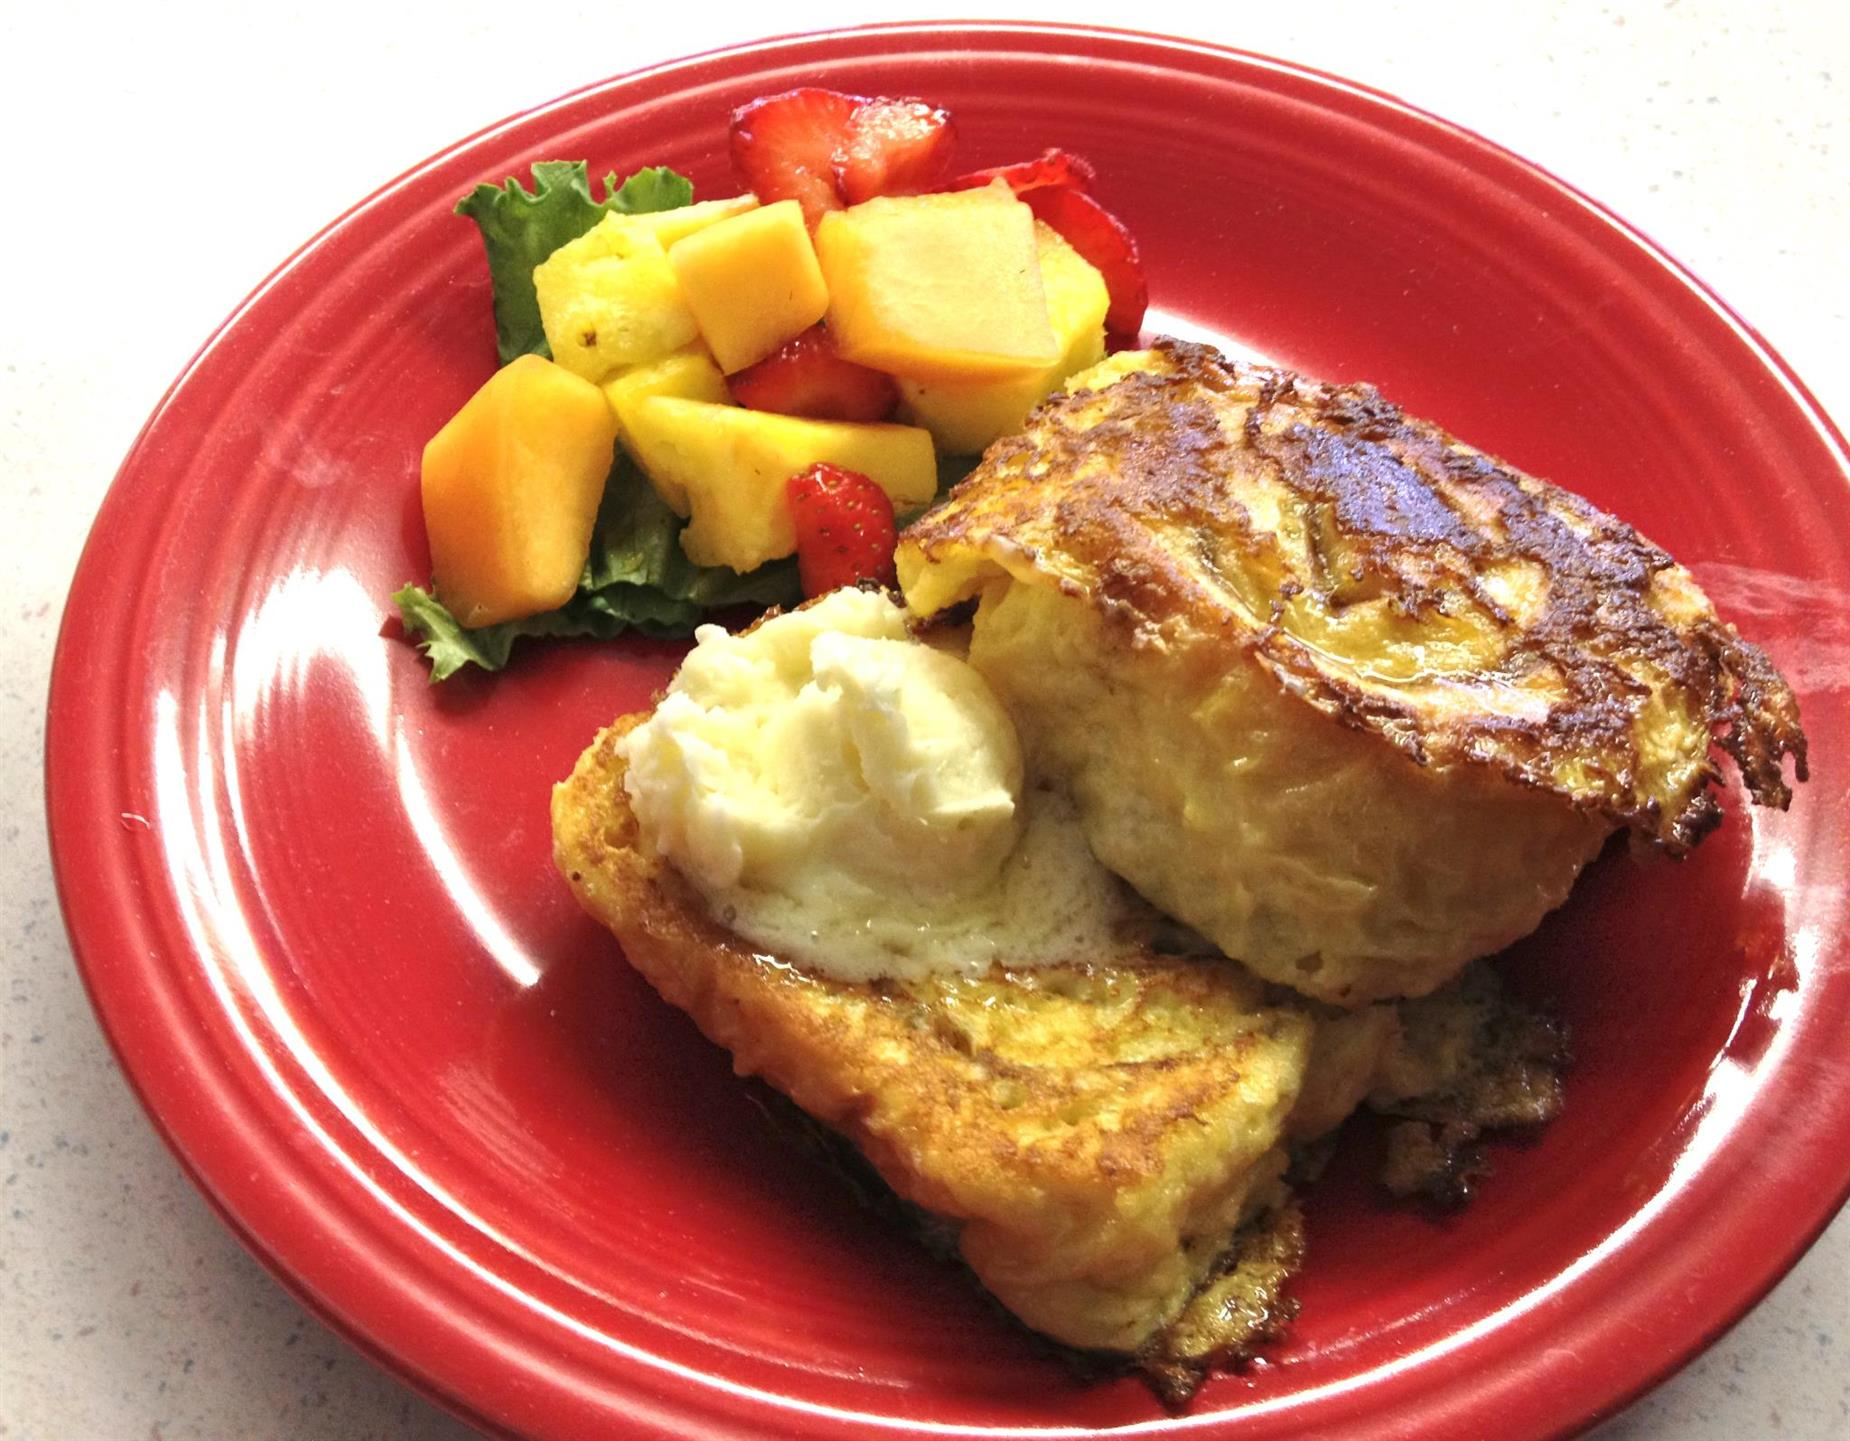 french toast with side of fruit salad